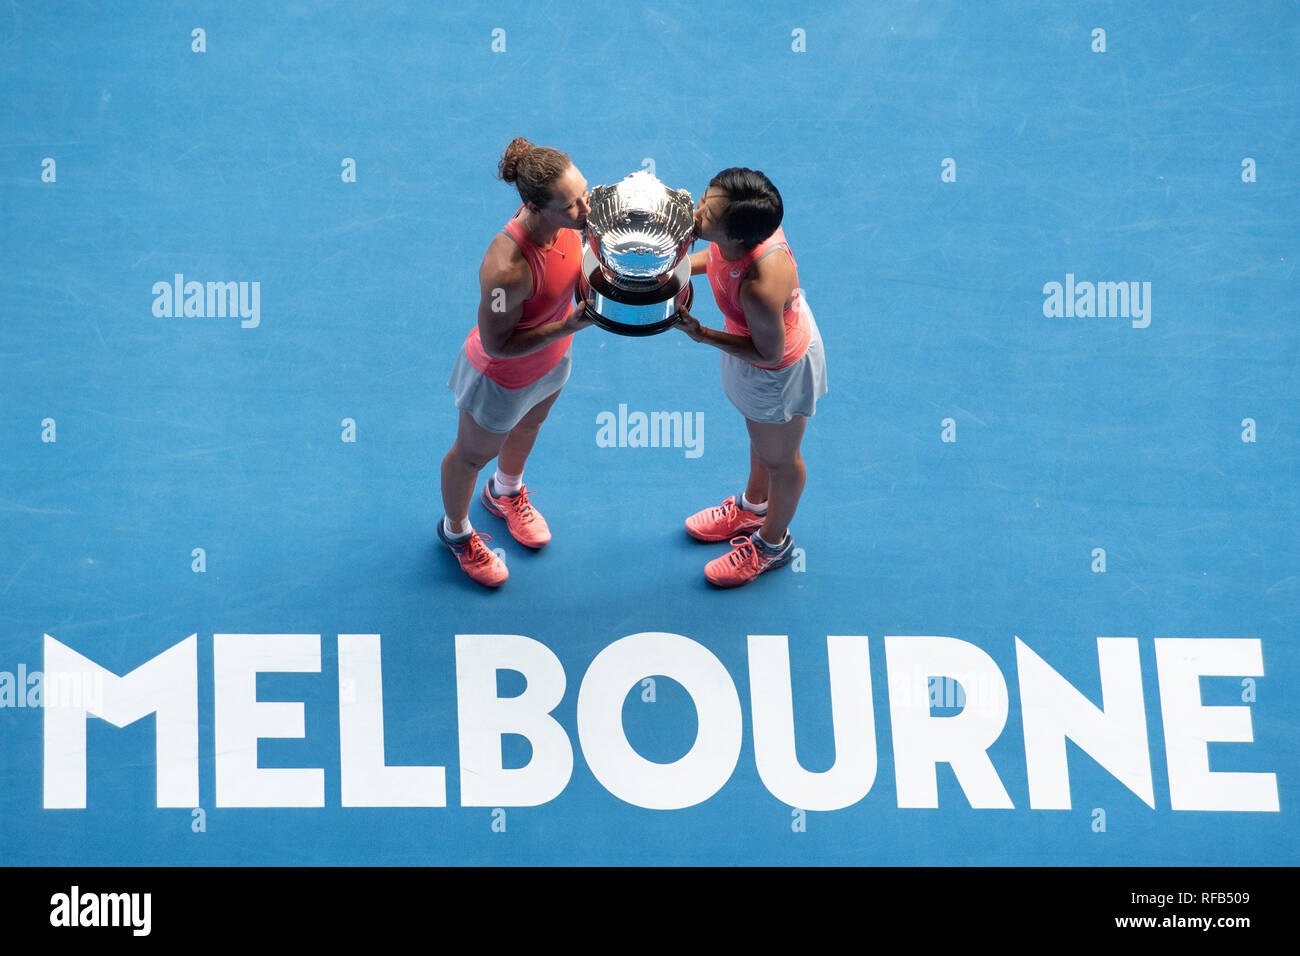 Melbourne, Australia  25th Jan, 2019  Zhang Shuai (R) of